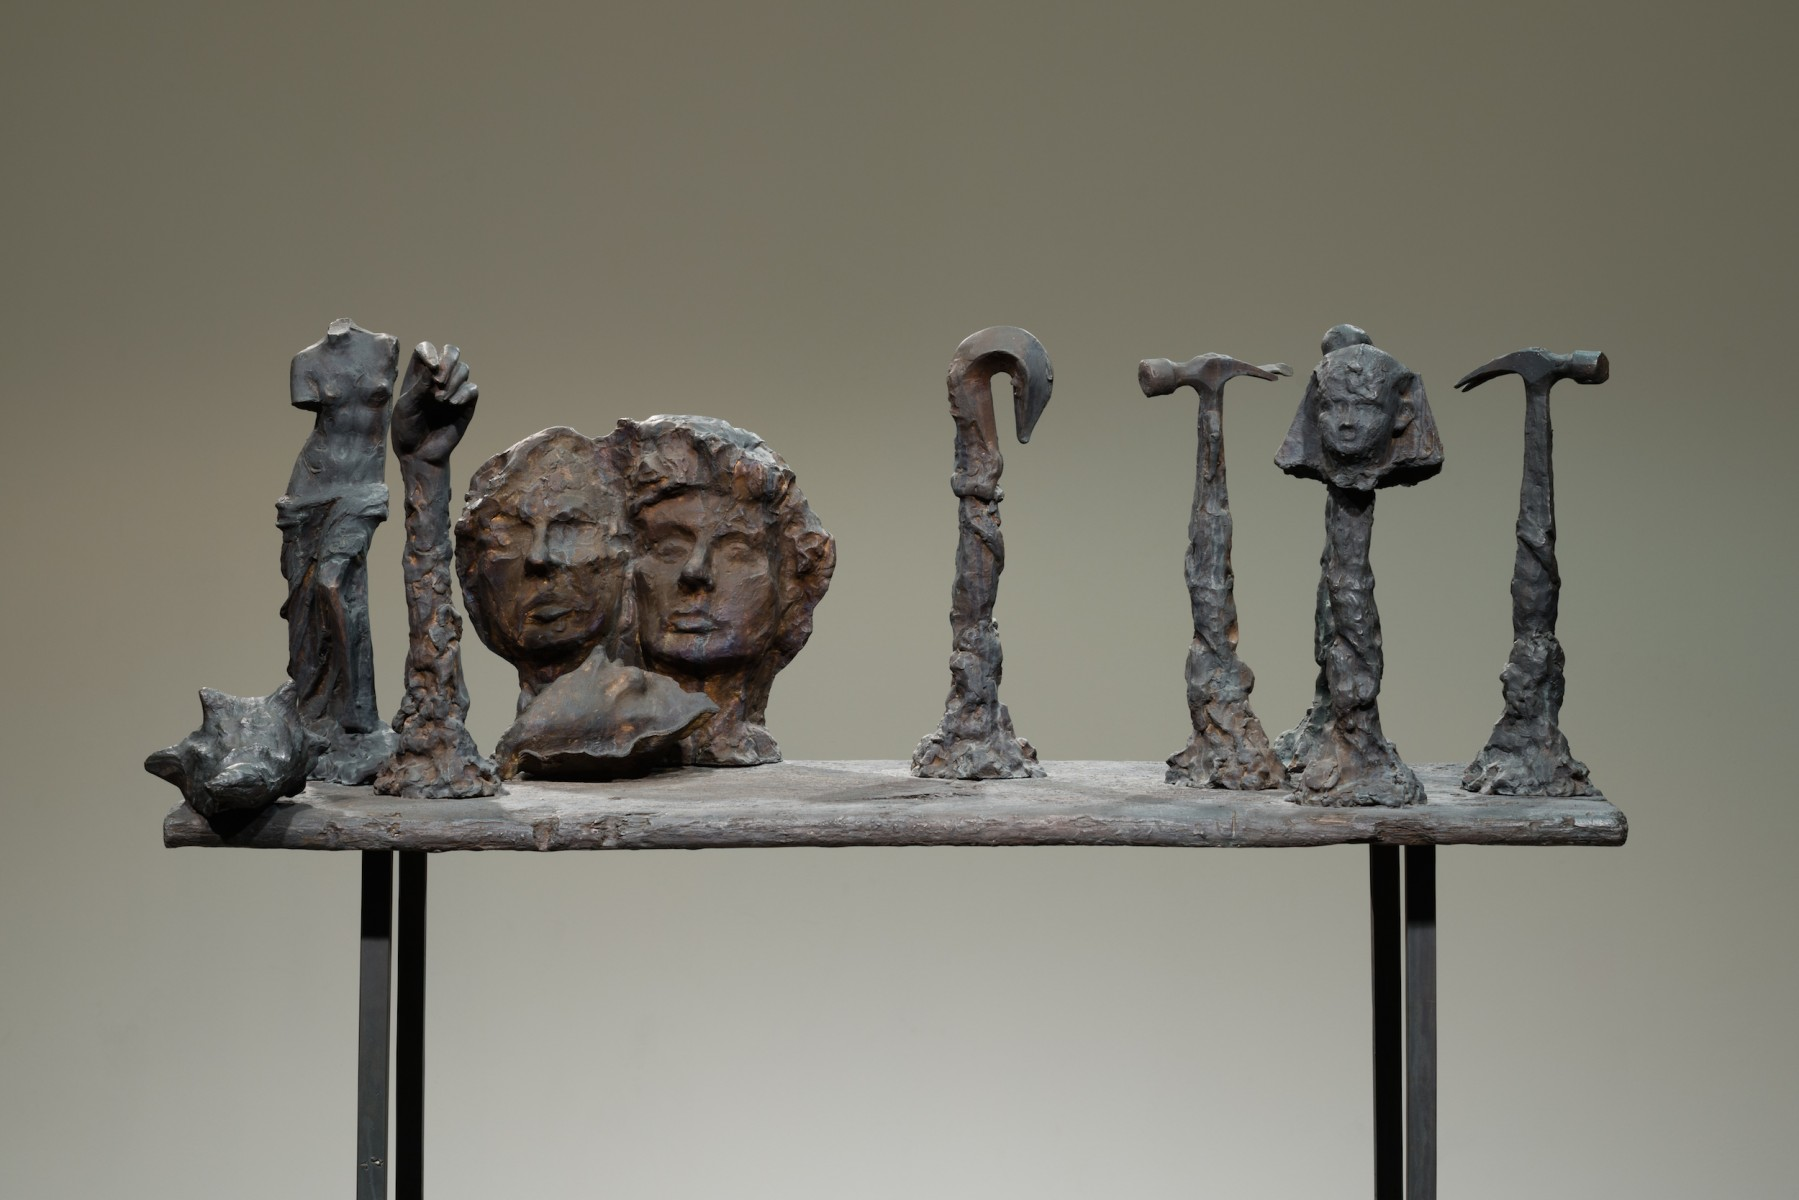 Figures of bodies, faces, and tools on a sculpture